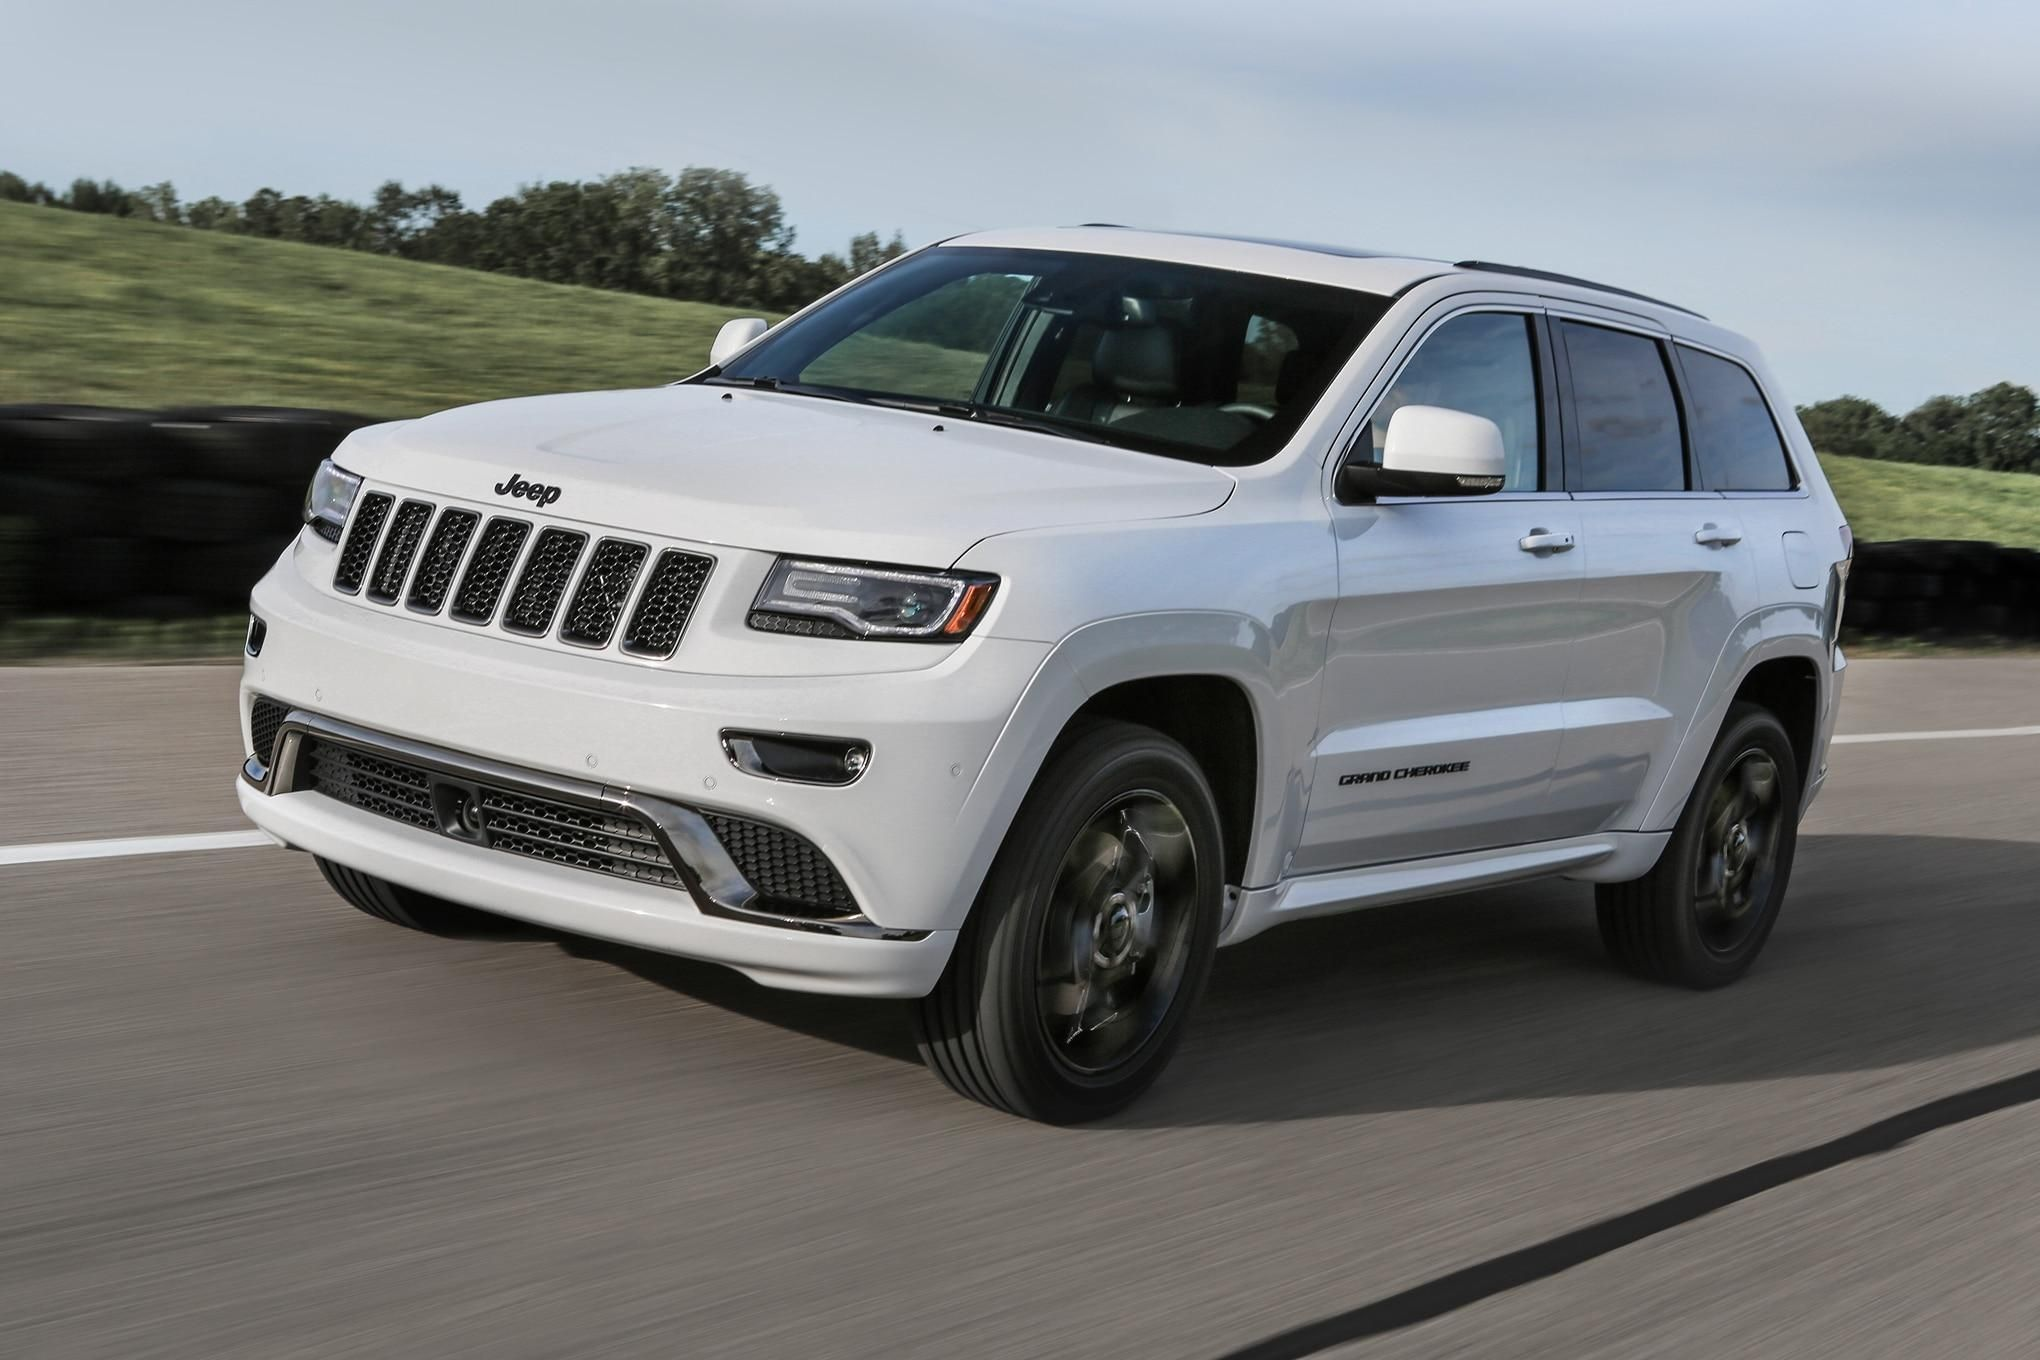 2016 Jeep Grand Cherokee Improves Mpg Adds Engine Stop Start With 2018 Jeep Cherokee Mpg Jeep Grand Cherokee Jeep Jeep Grand